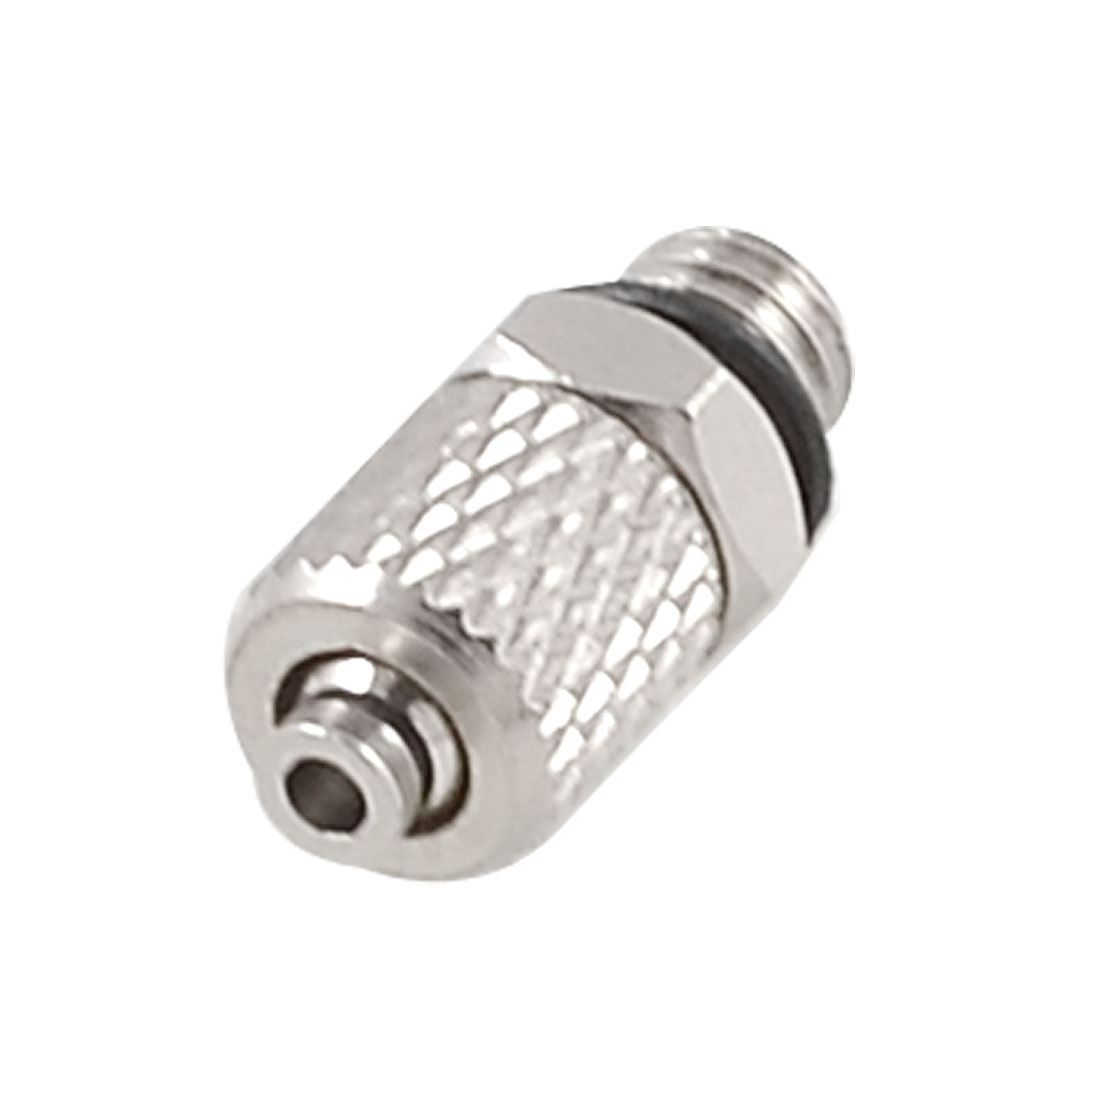 "Silver Tone Metal 0.197"" Male Thread 0.118"" Hose Quick Joint Connector"